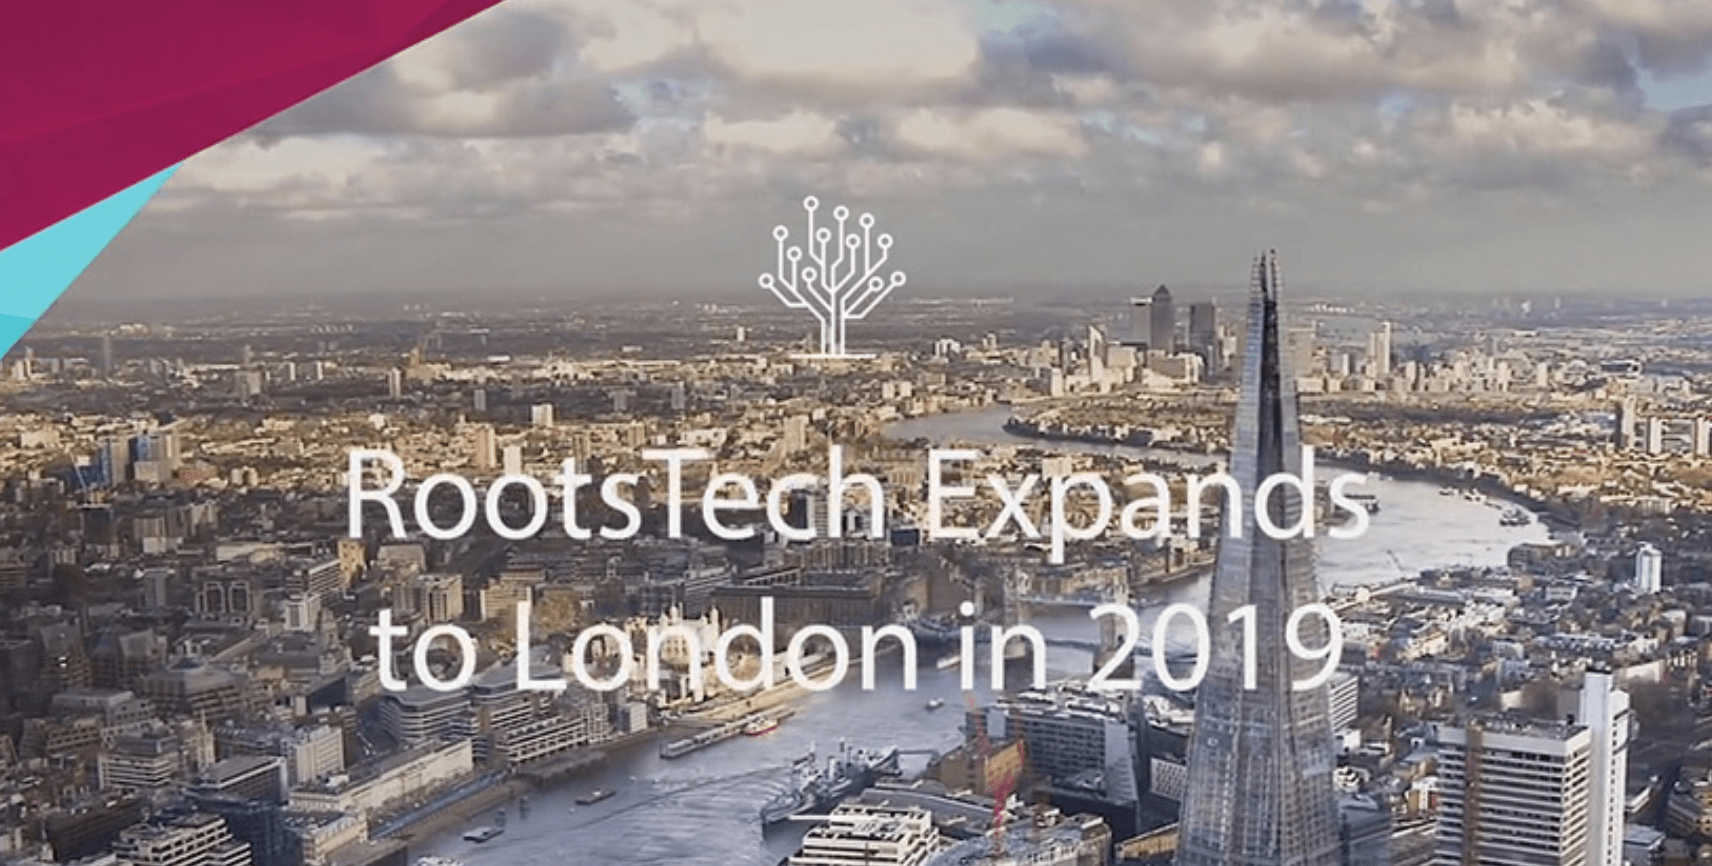 RootsTech London 2019 listed at OnGenealogy